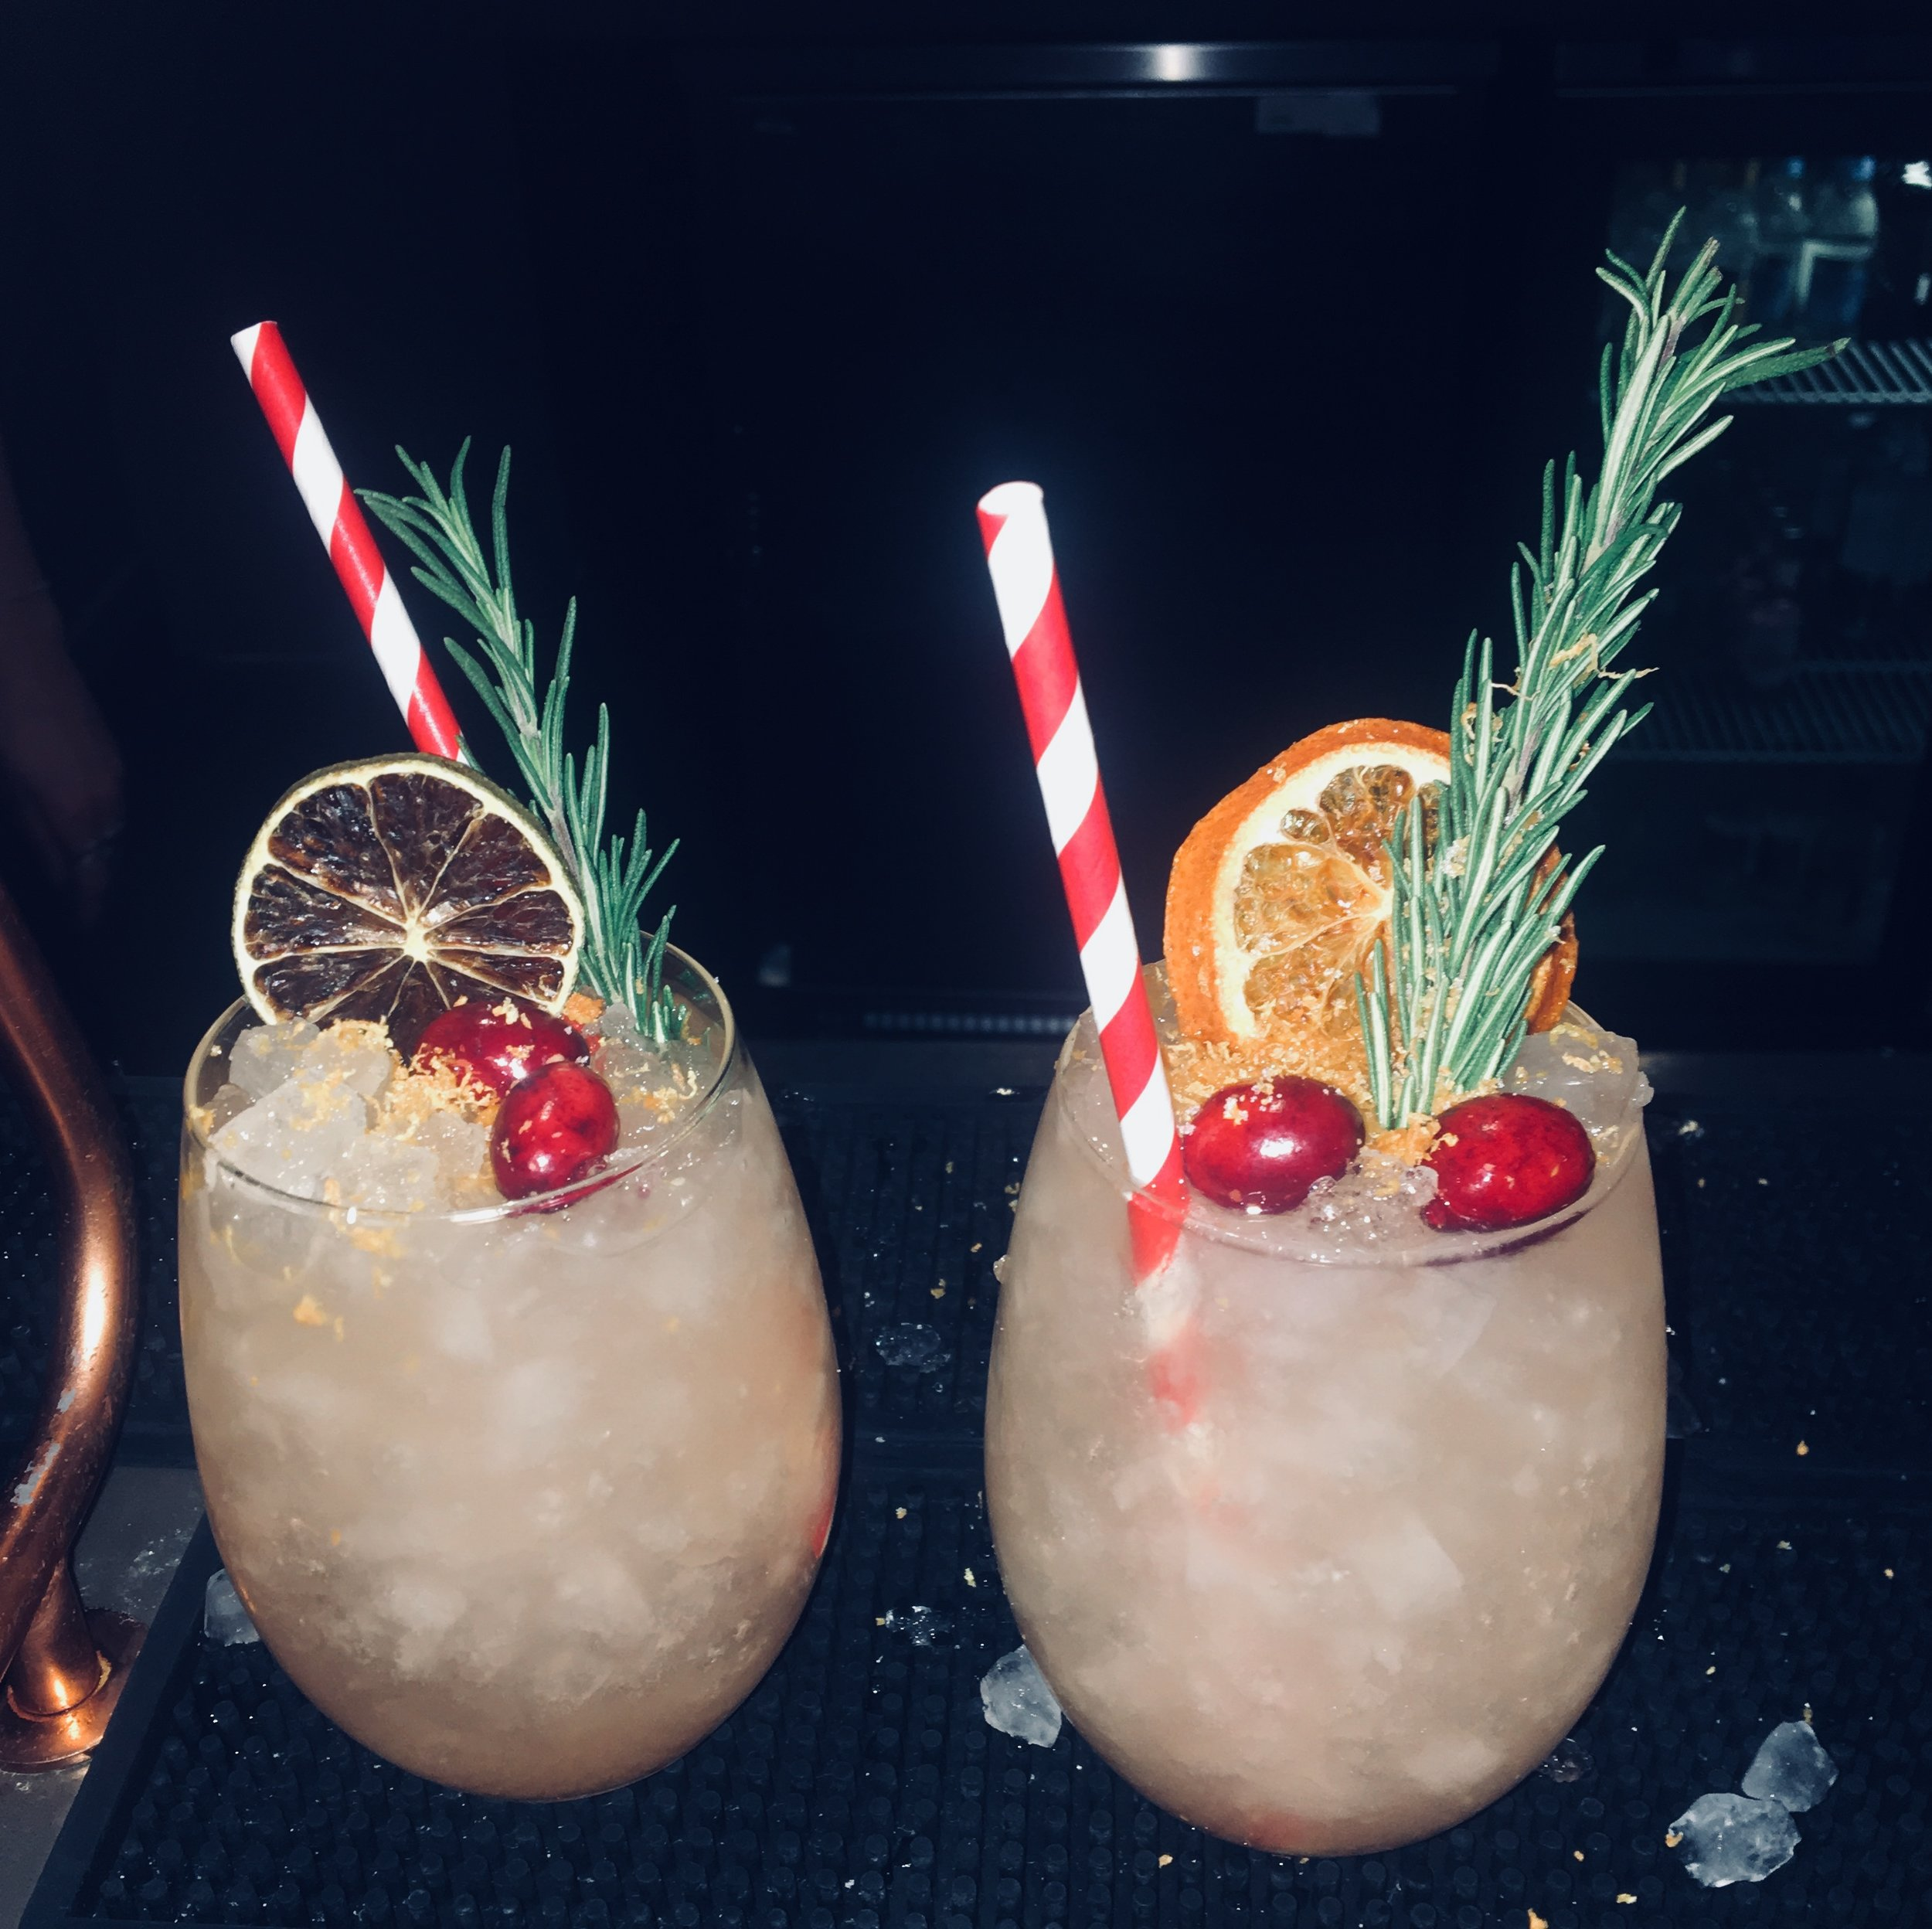 'Dale Dale Dale' - a festive Mexican inspired cocktail